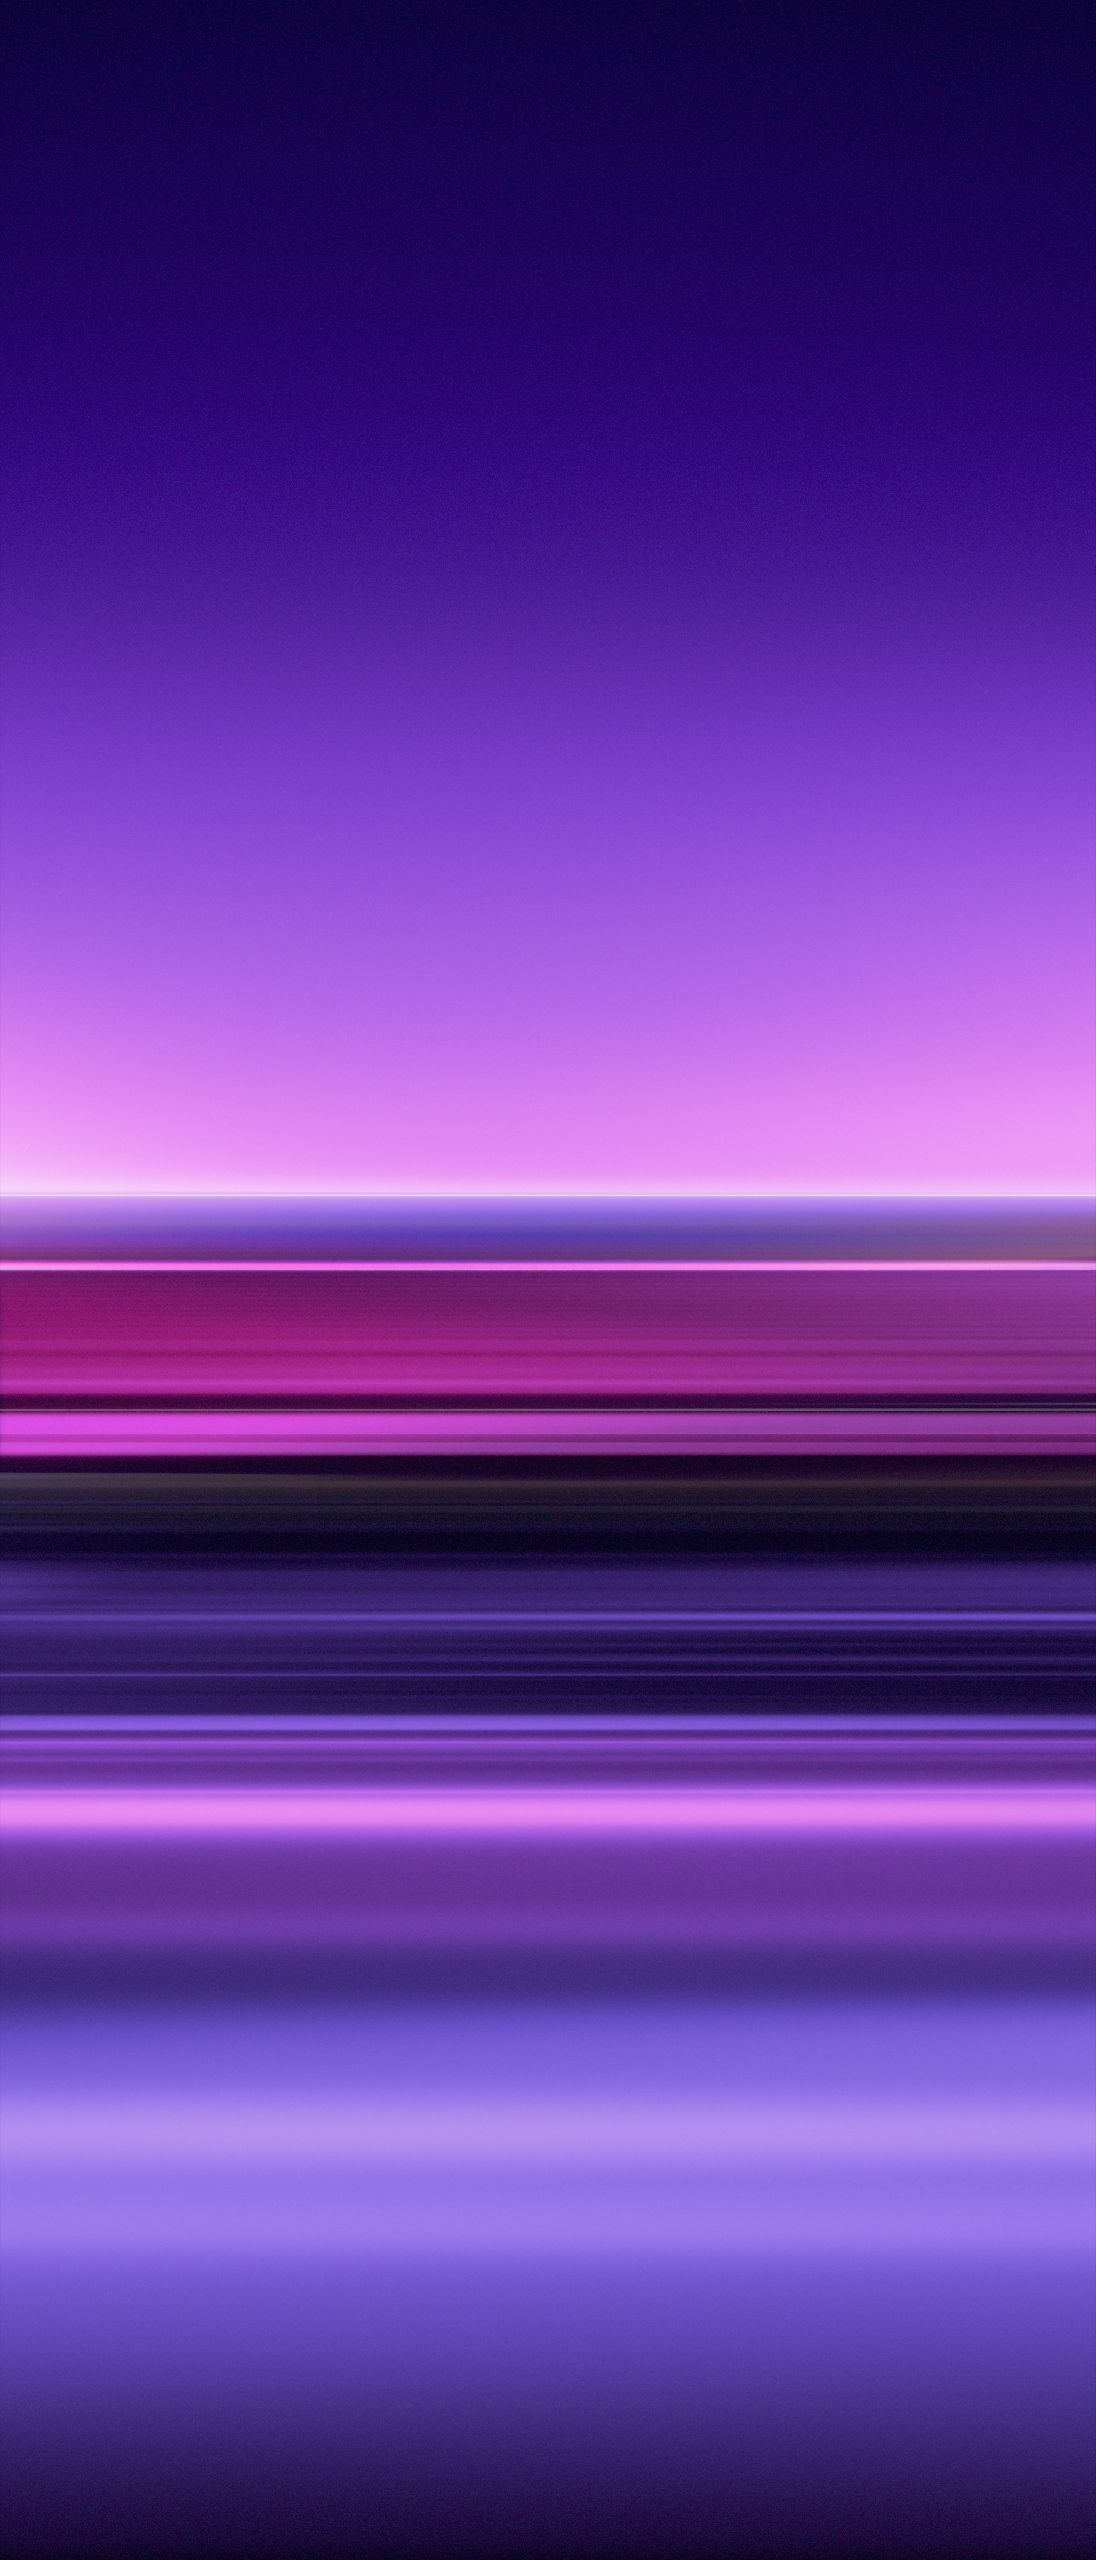 Download Sony Xperia 1 Wallpapers Full Hd Resolution Official Xperia Wallpaper Backgrounds Phone Wallpapers Stock Wallpaper